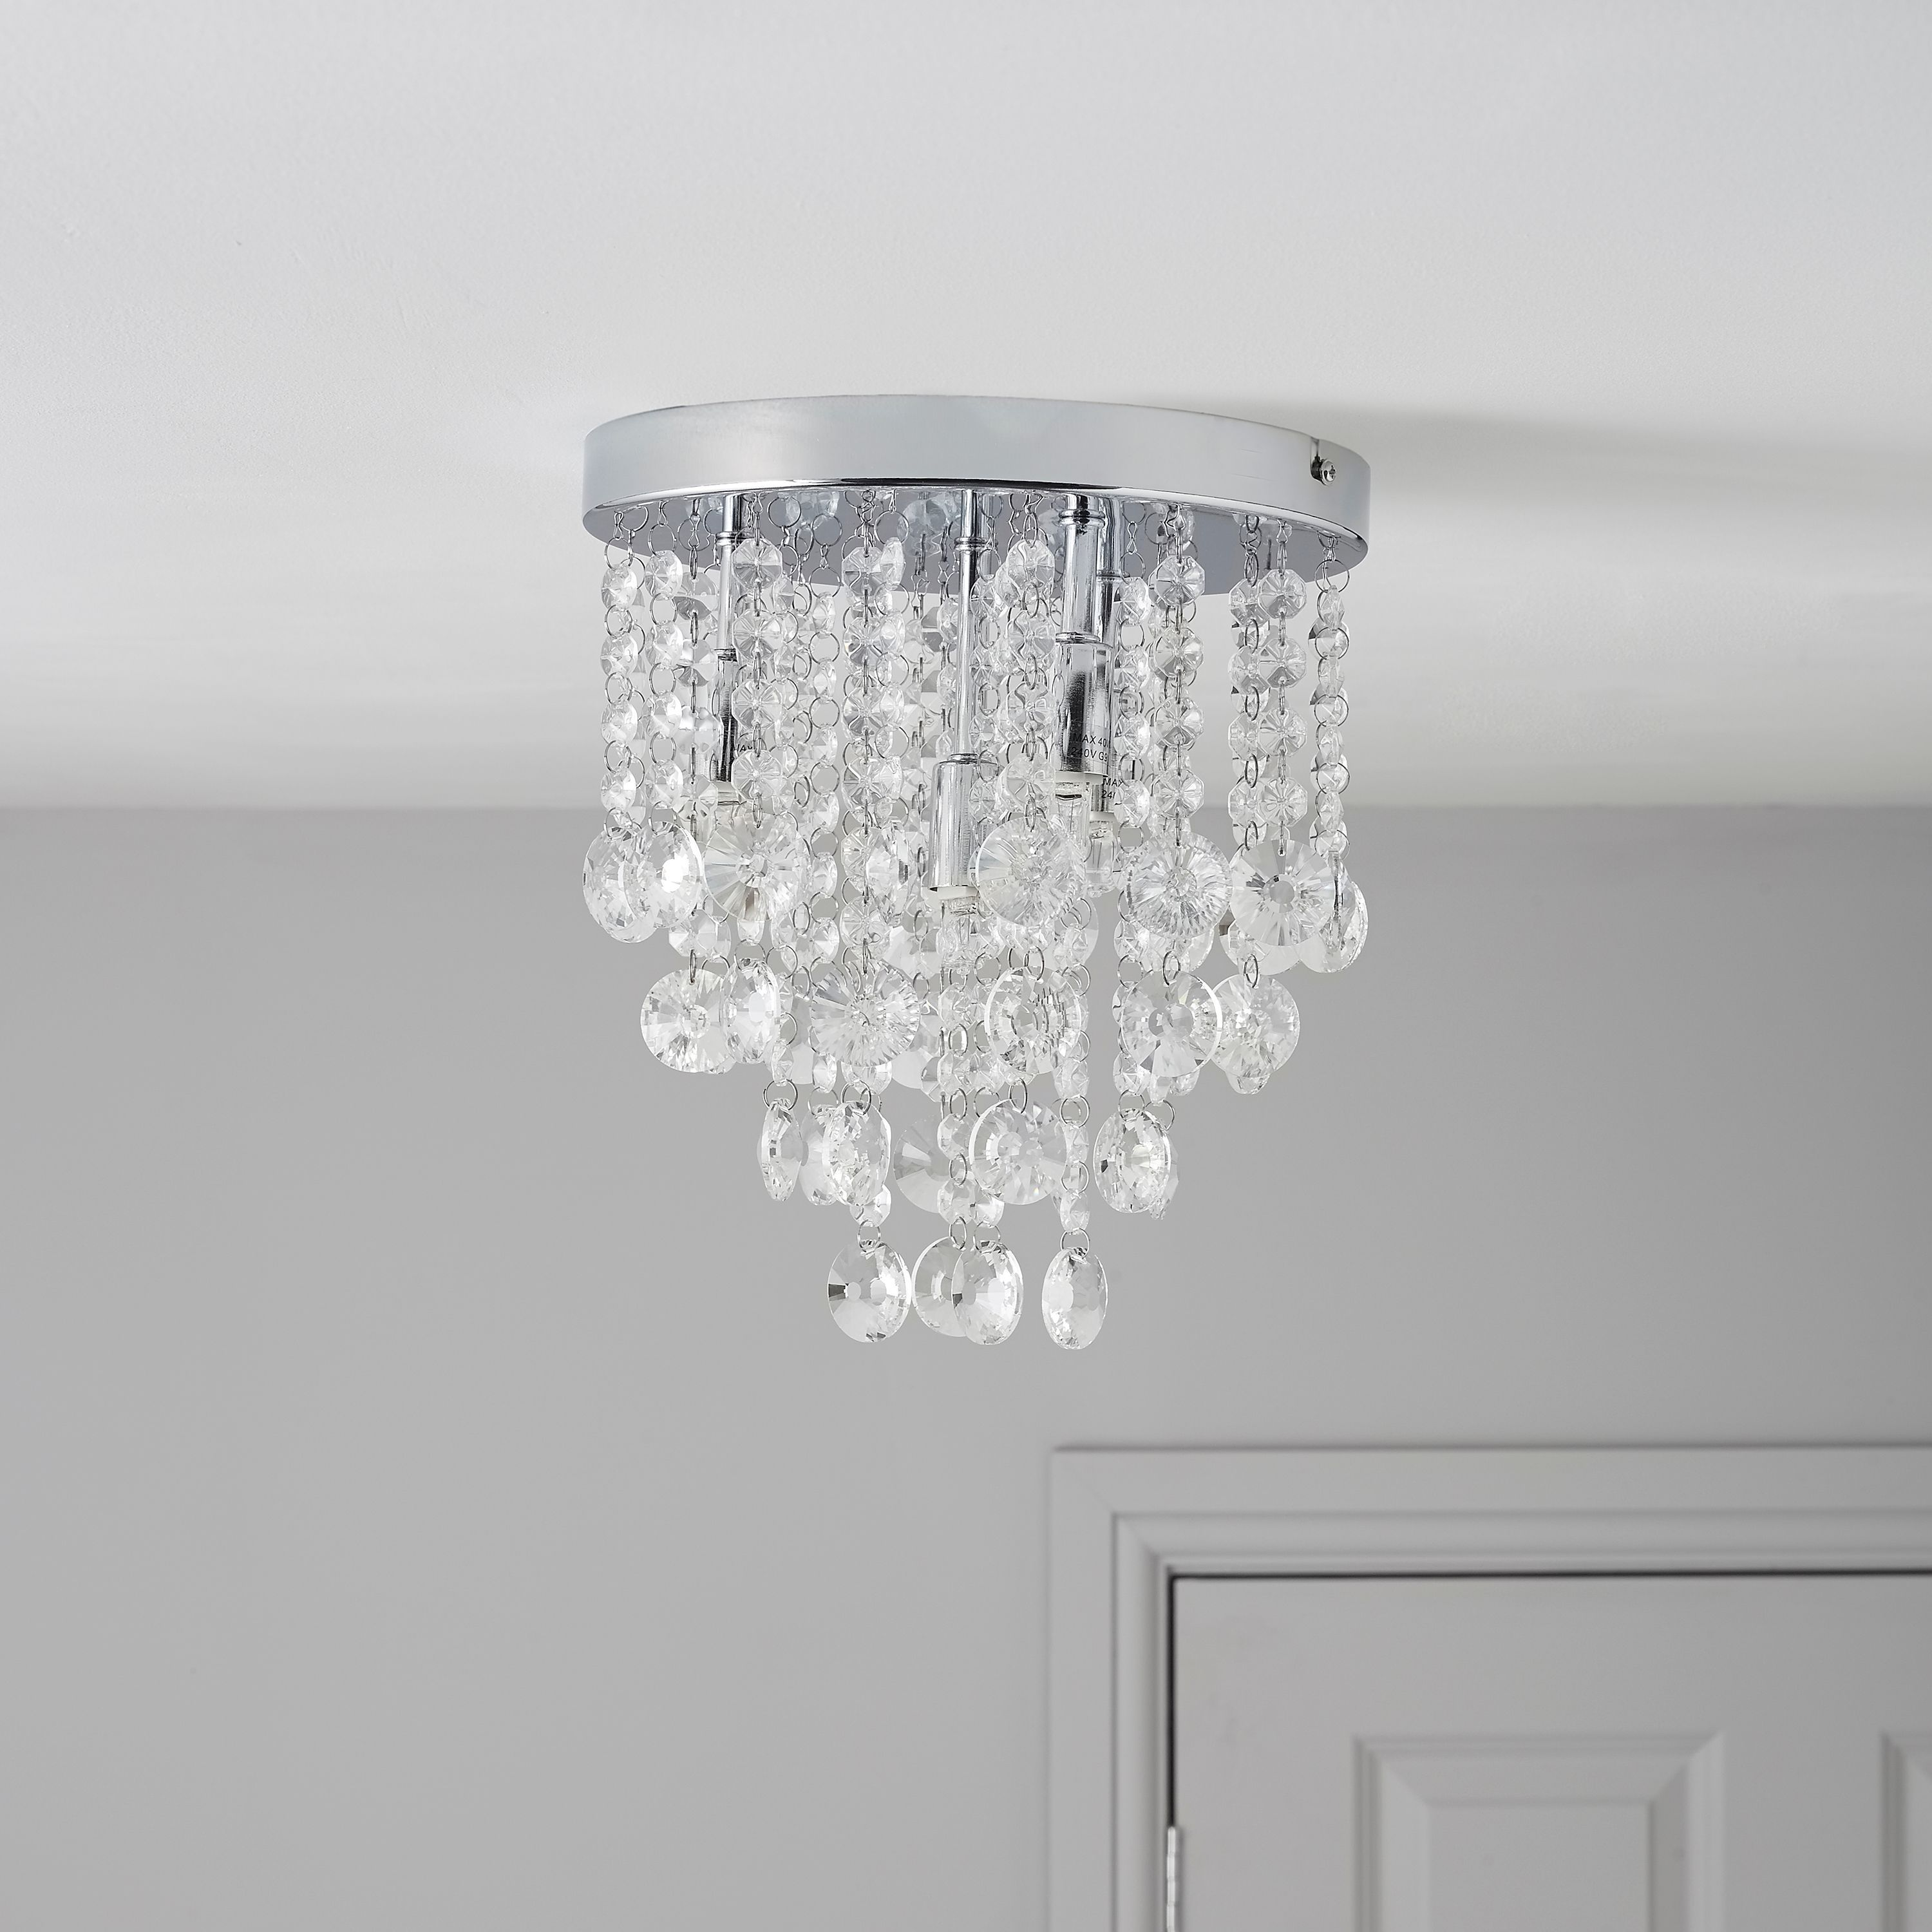 Glimmer Crystal Droplets Chrome Effect 4 Lamp Ceiling Light